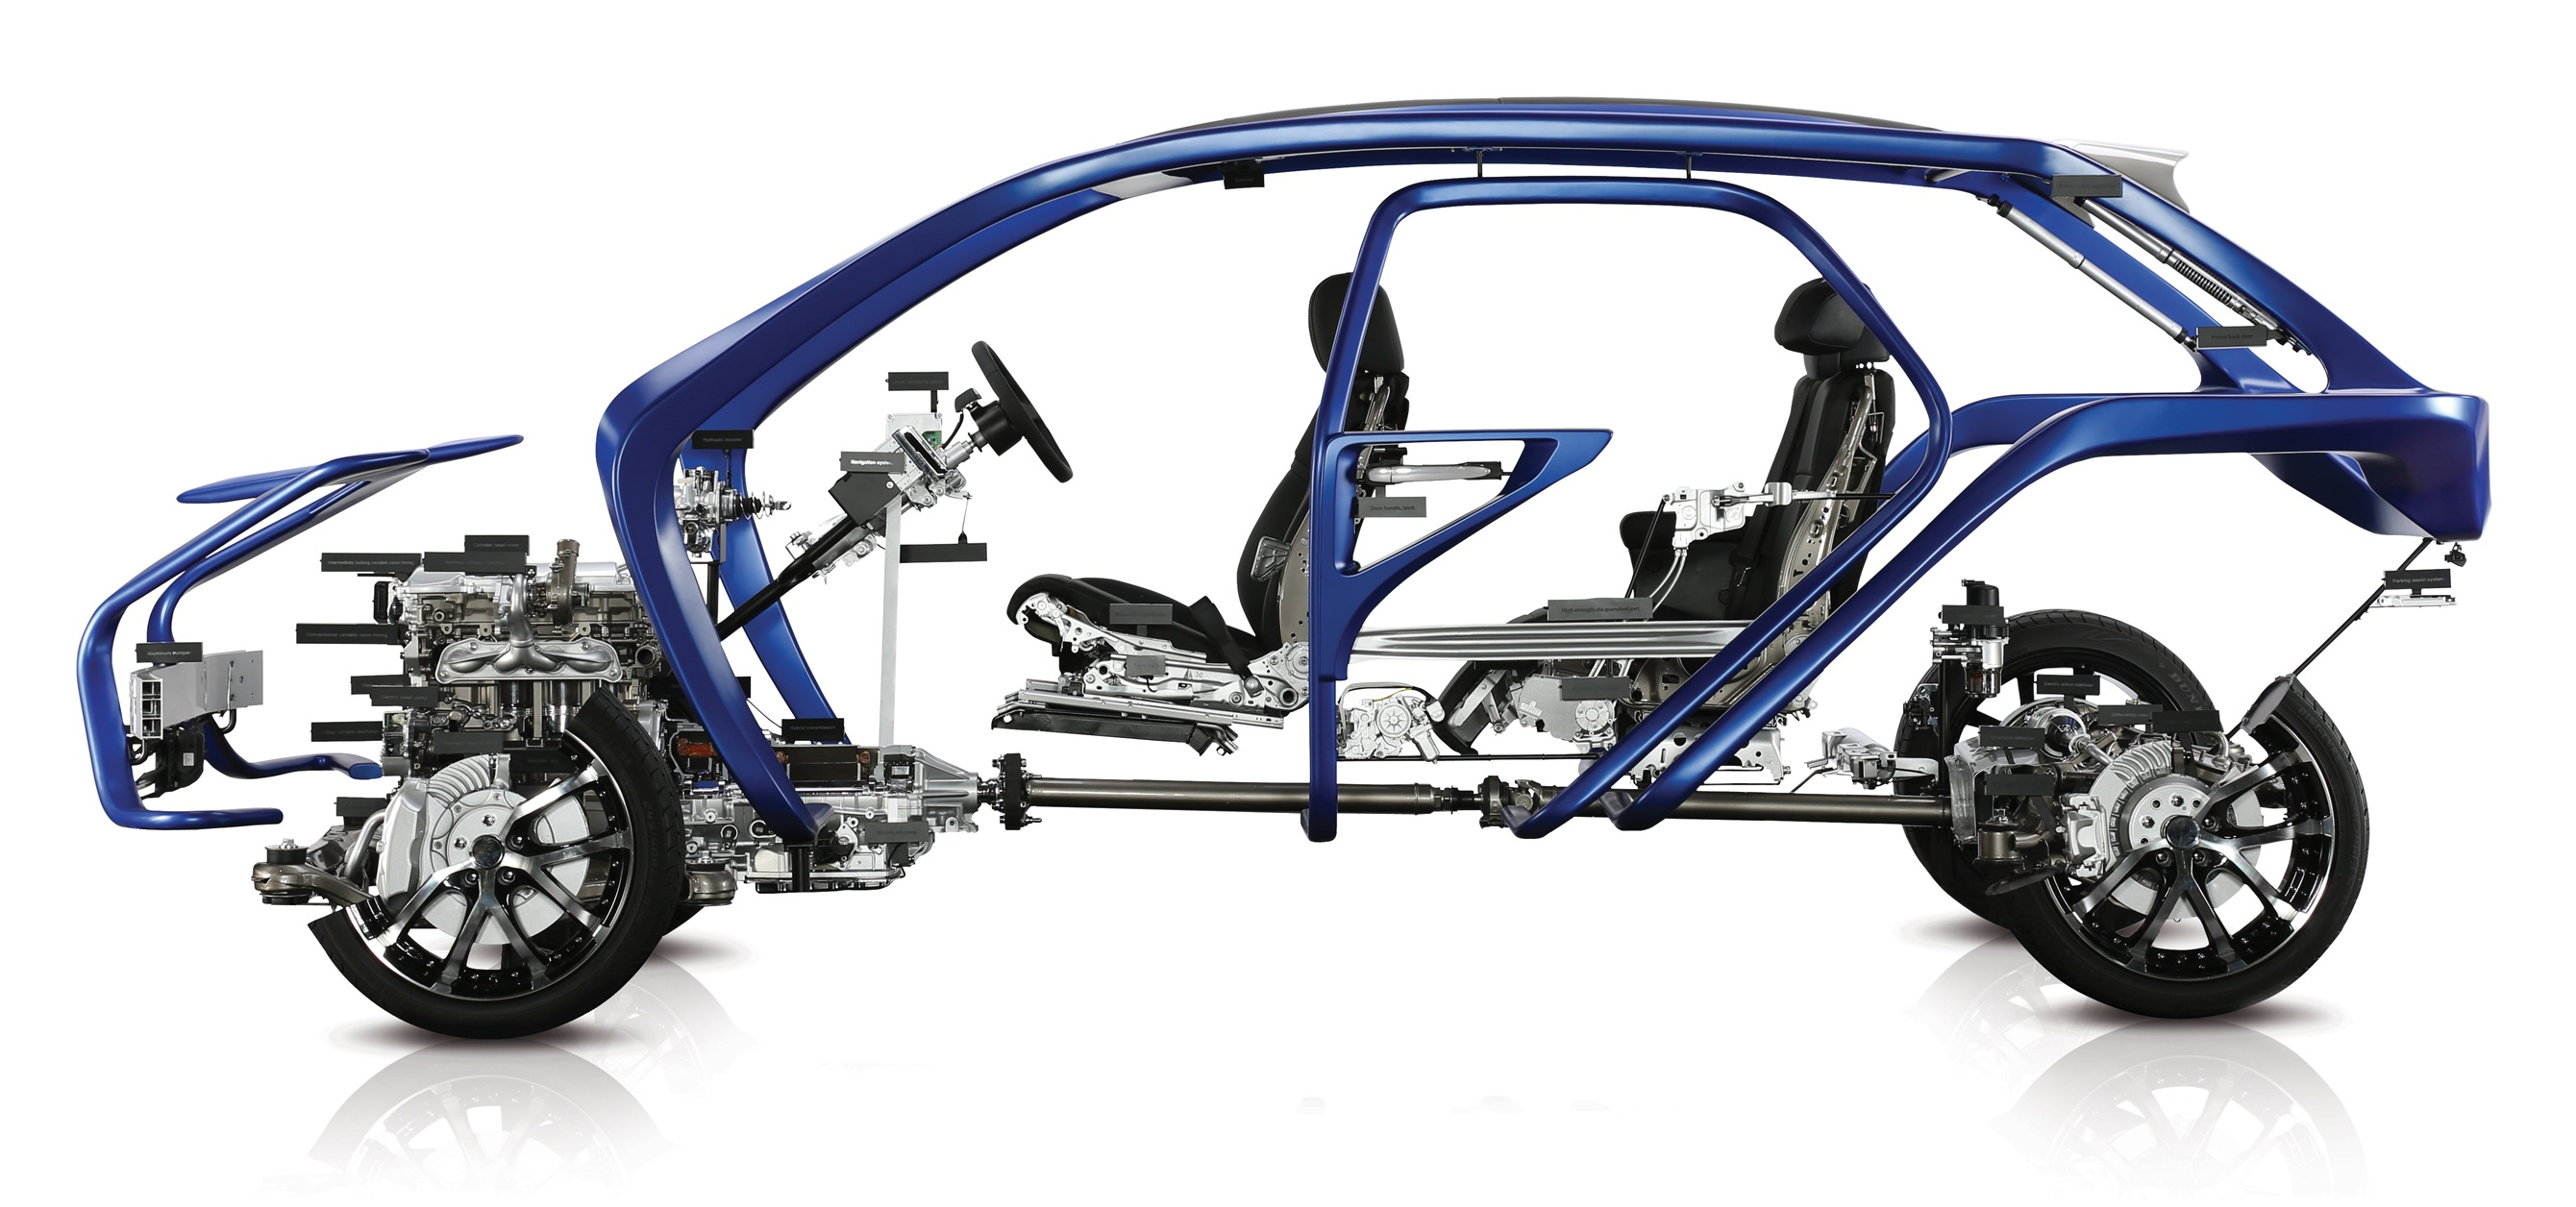 Global Automotive Chassis System Market Forecast to 2025 Insights Shared in Detailed Report